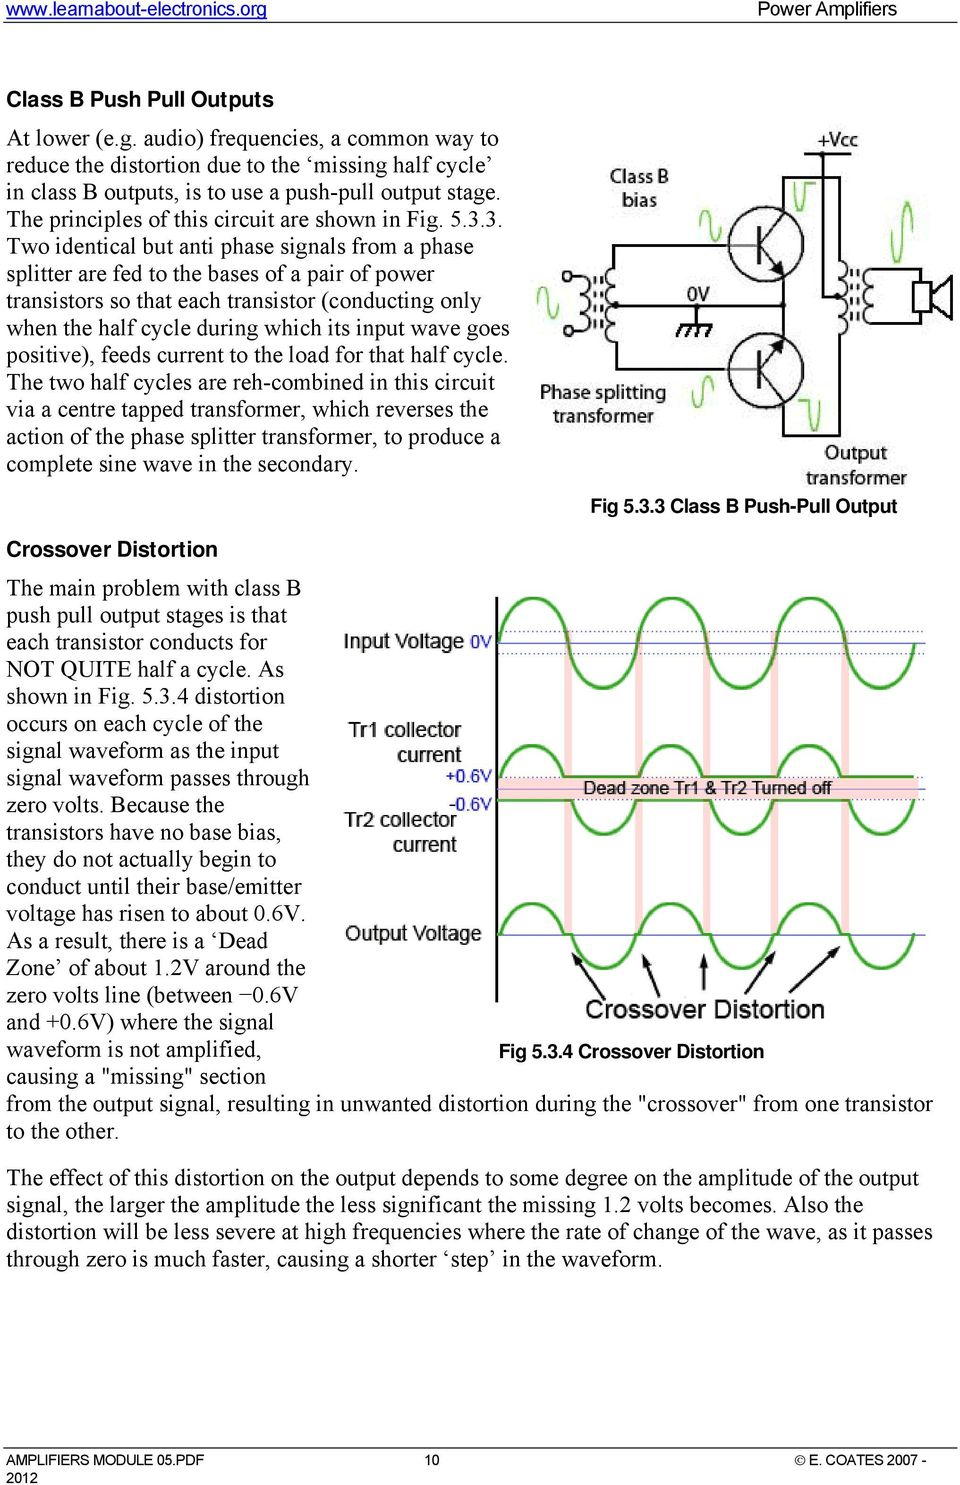 Power Amplifiers Introduction To Discrete Class Ab Transistor Audio Amplifier Circuit Diagram 3 Two Identical But Anti Phase Signals From A Splitter Are Fed The